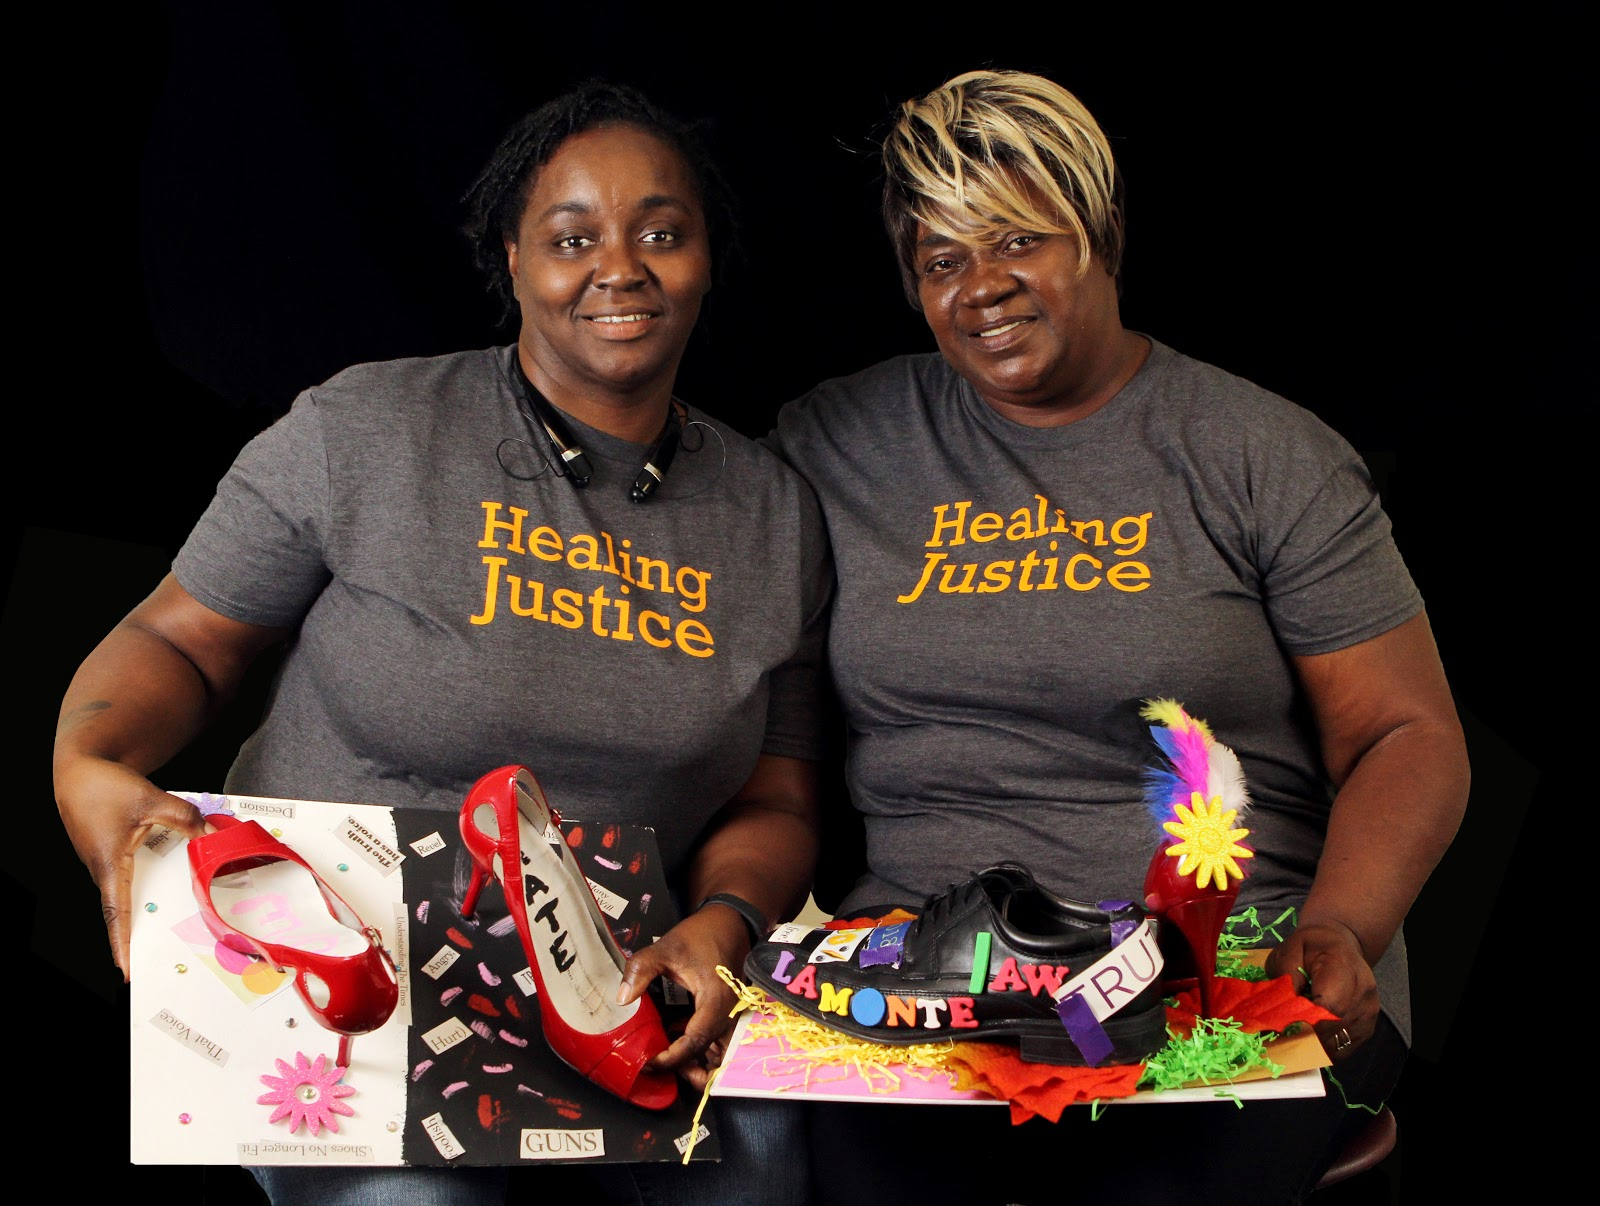 Rosie + Niko - Rosie Mcintyre (right) and Niko Quinn (left), Exoneree Family Member and Victim Family Member, KansasRosie's 17-year-old son, Lamonte Mcintyre, was convicted of a double murder in 1994 and sentenced to life in prison. Lamonte returned home at 40-years old after being exonerated in 2017. Rosie worked hard to free her son, including often dressing as a man to go out at night to investigate the case. Niko's cousin, Doniel Quinn, was one of two murder victims in the case. Niko testified against Lamonte and later reached out to Rosie to explain that she had been wrong. She and Rosie became friends and fought together to free Lamonte. Their story of reconciliation embodies the spirit of Healing Justice.